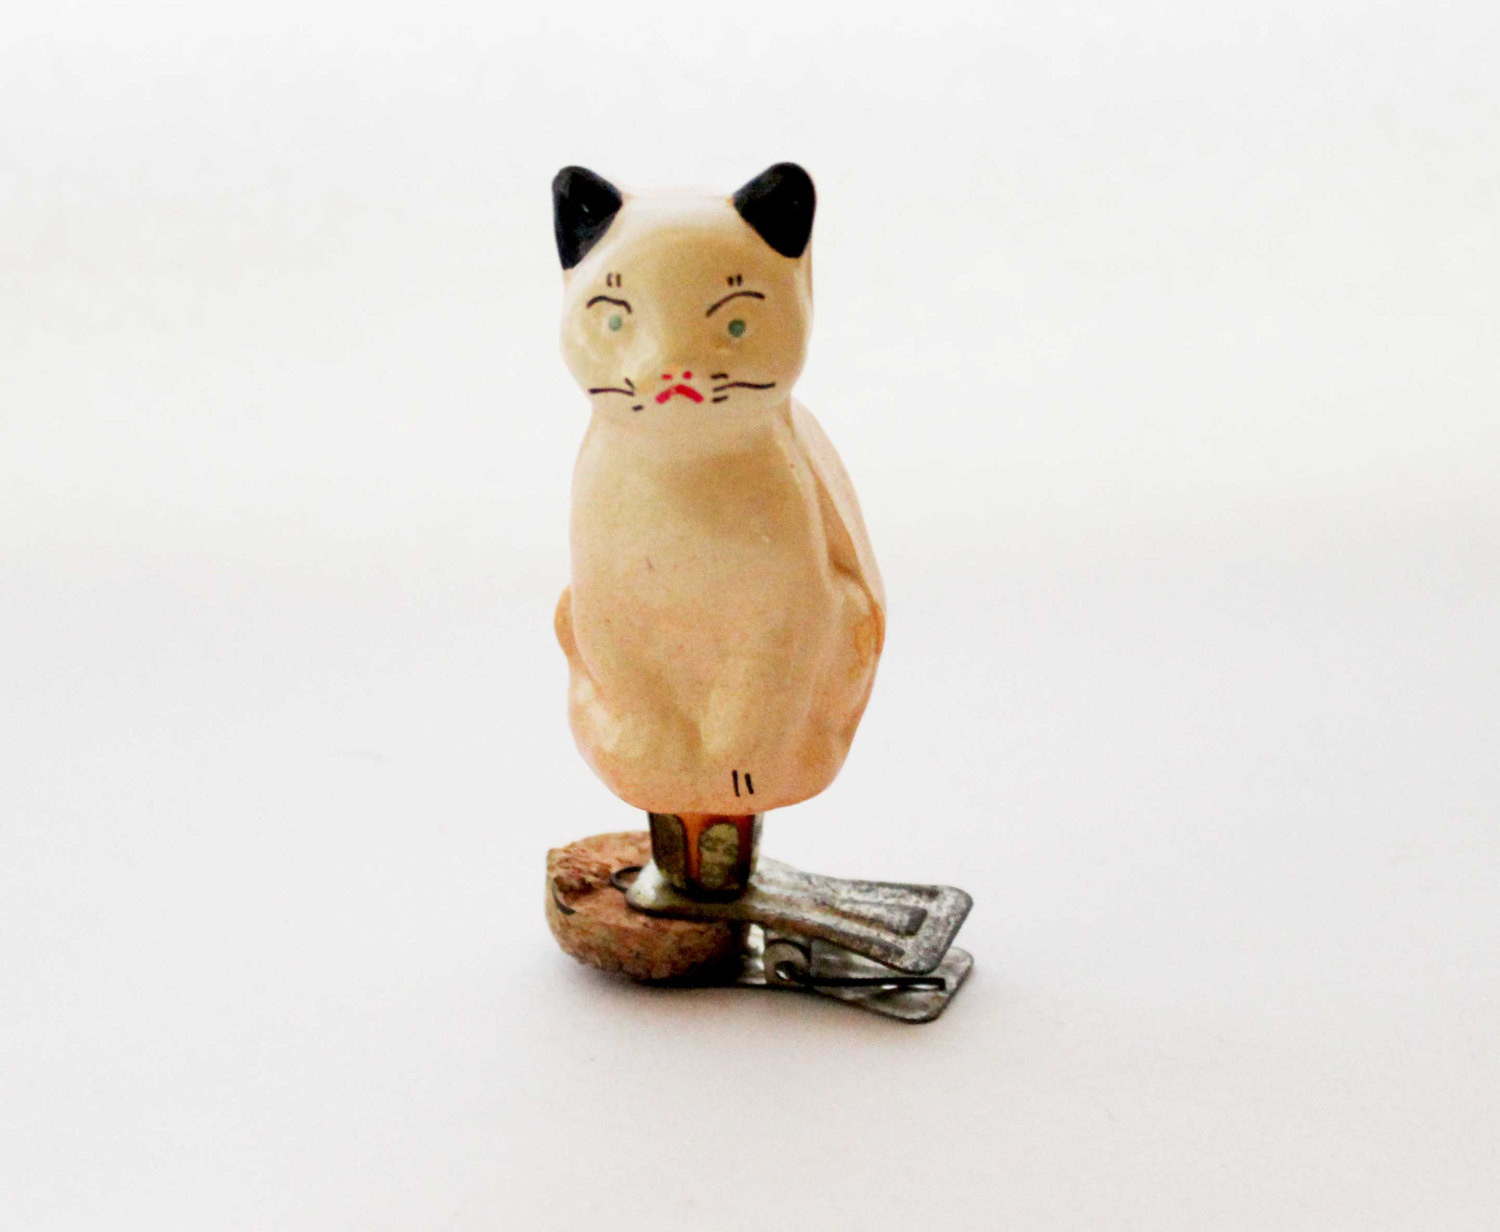 Best ideas about Cat Birthday Gifts . Save or Pin RESERV Gifts cat lovers Gifts Cat Birthday by oldUSSRvintage Now.